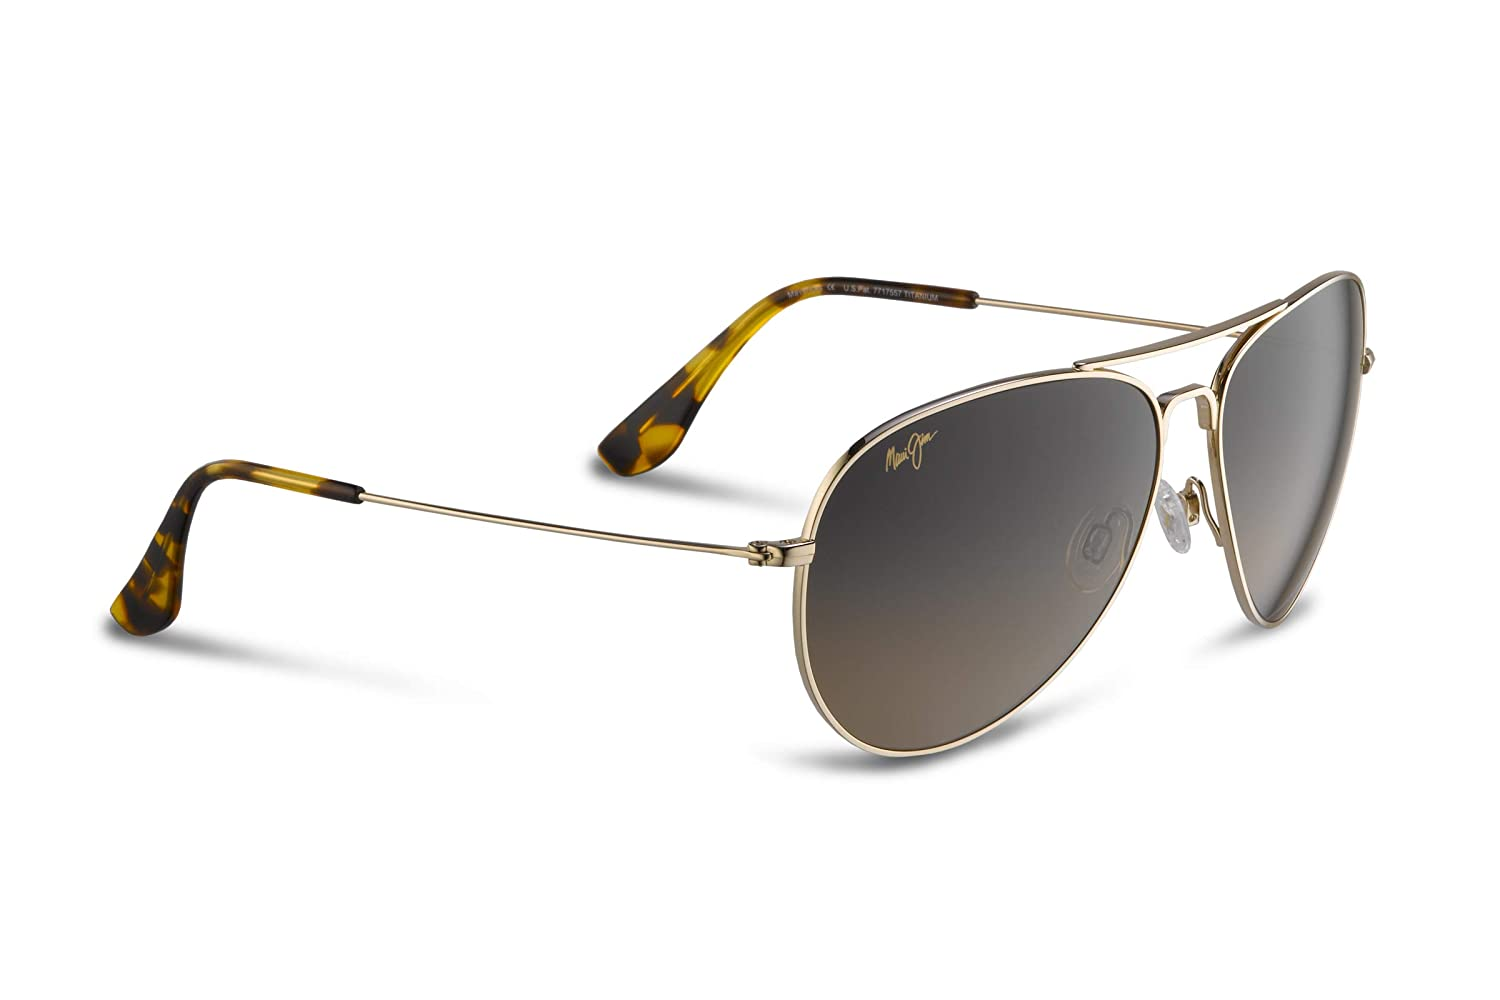 2490aad3e3 Amazon.com  Maui Jim Mavericks HS264-16